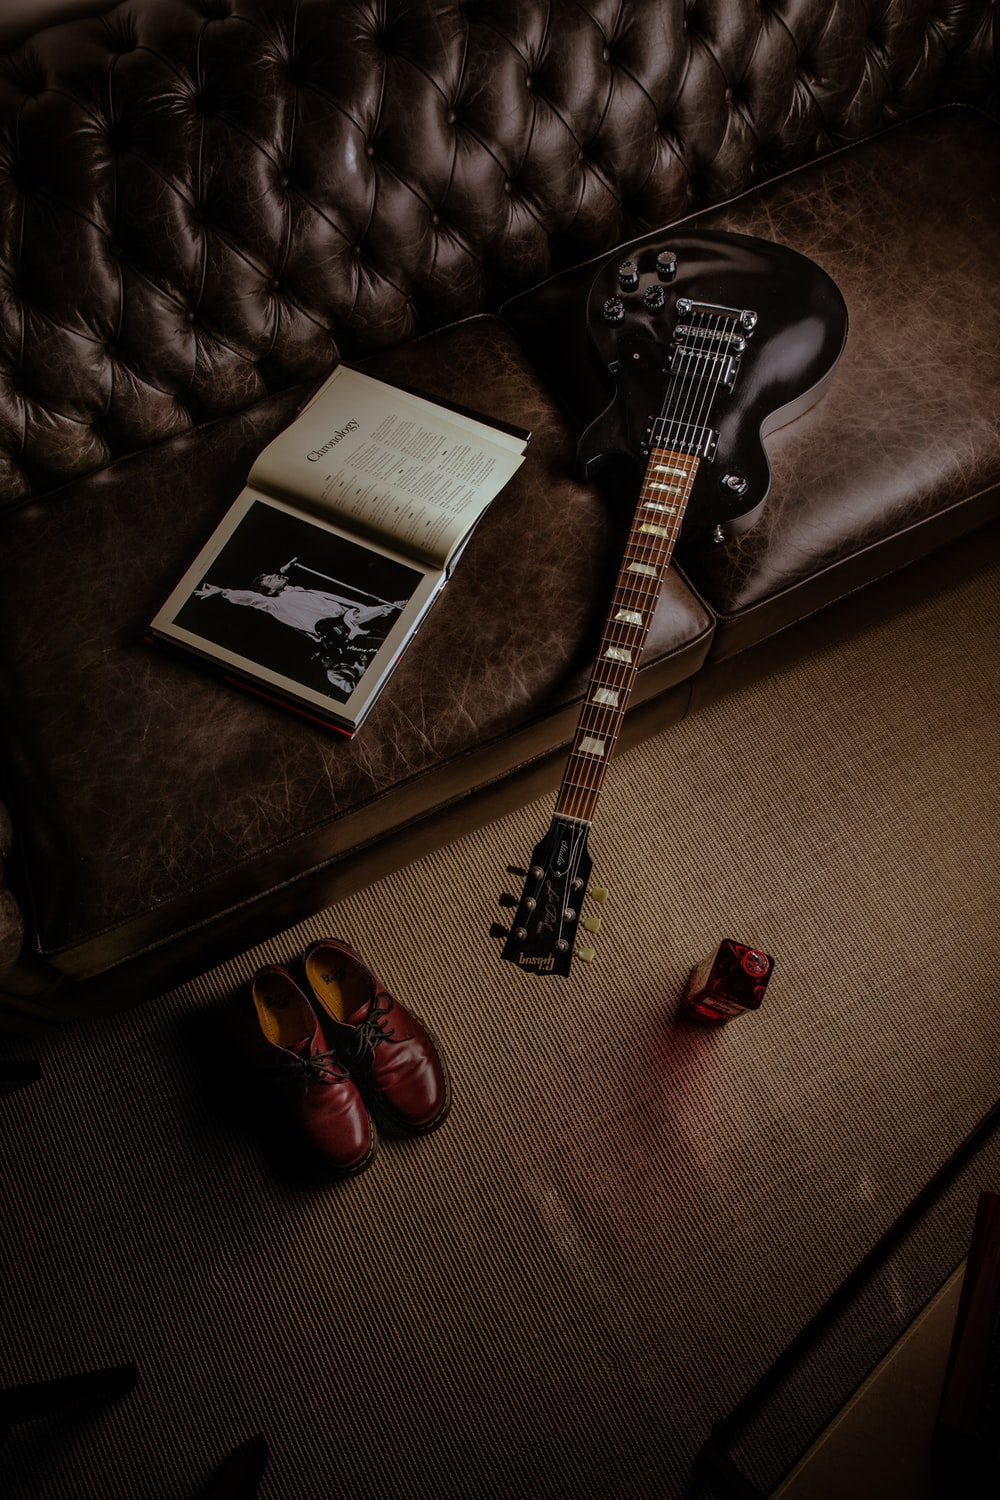 black and white stratocaster electric guitar beside black and white book